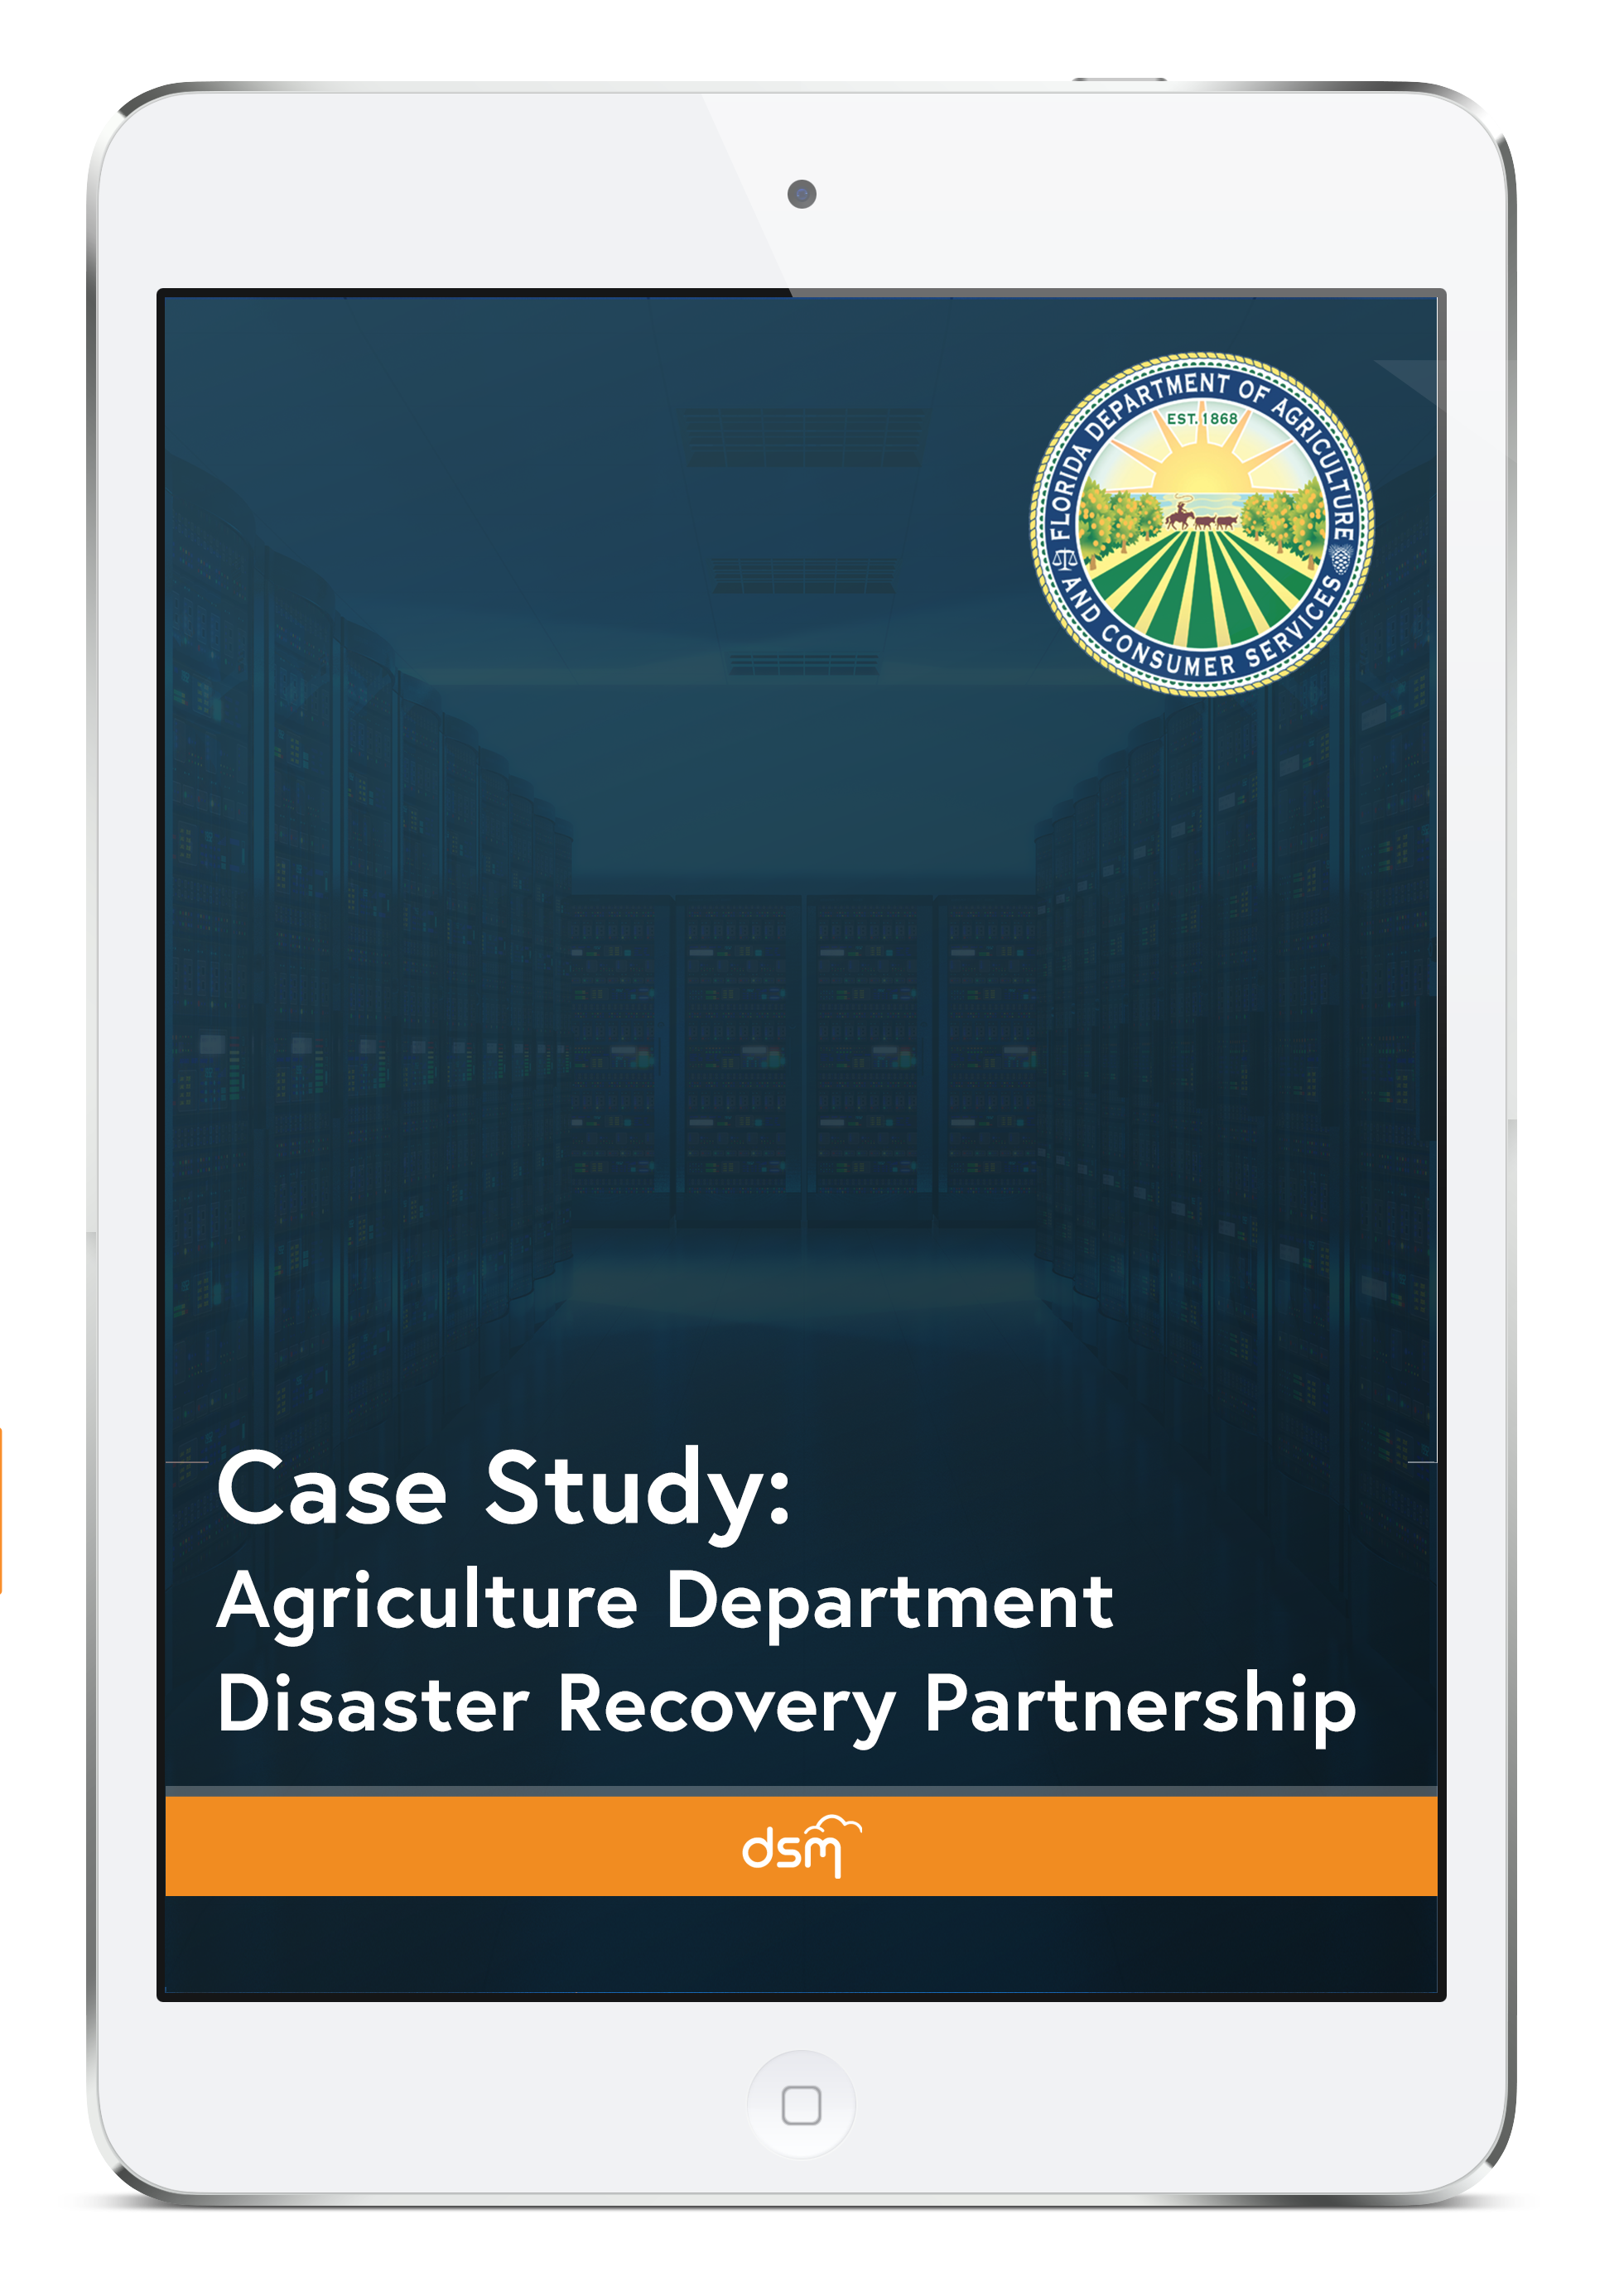 Agriculture-Department-Disaster-Recovery-Partnership